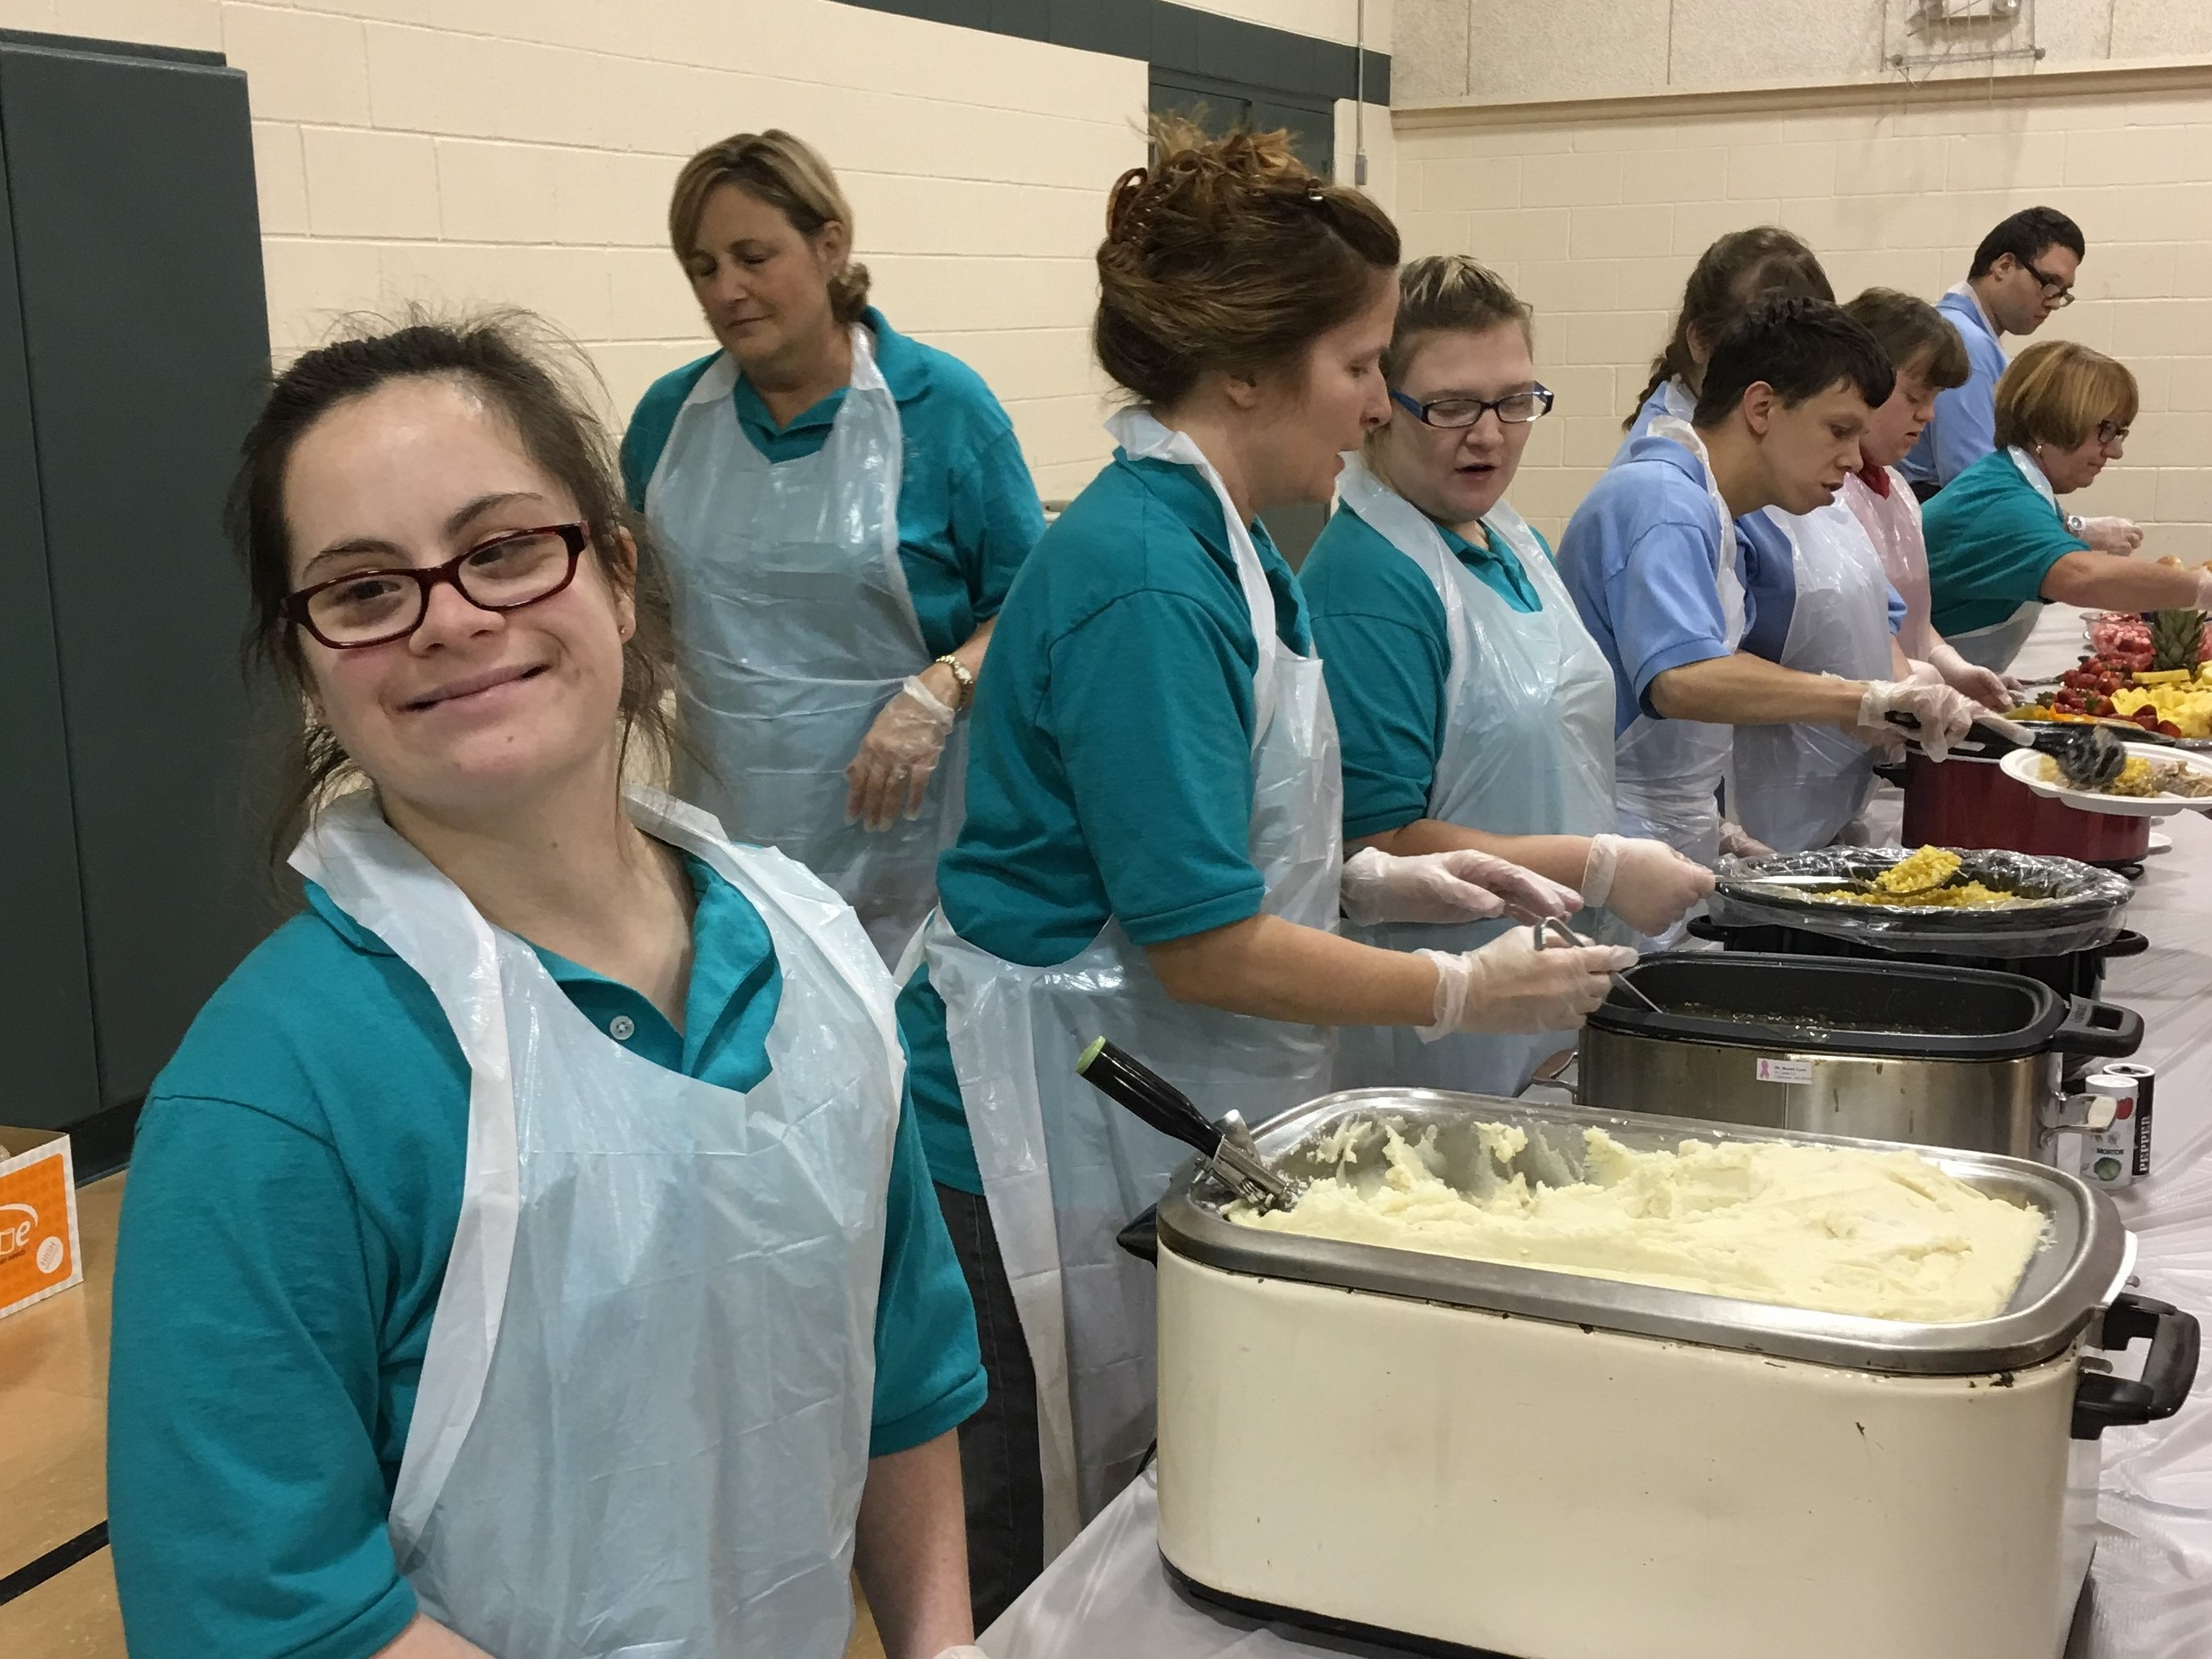 Students at the Waldron center are smiling in the matching uniforms as serve dinner to others.